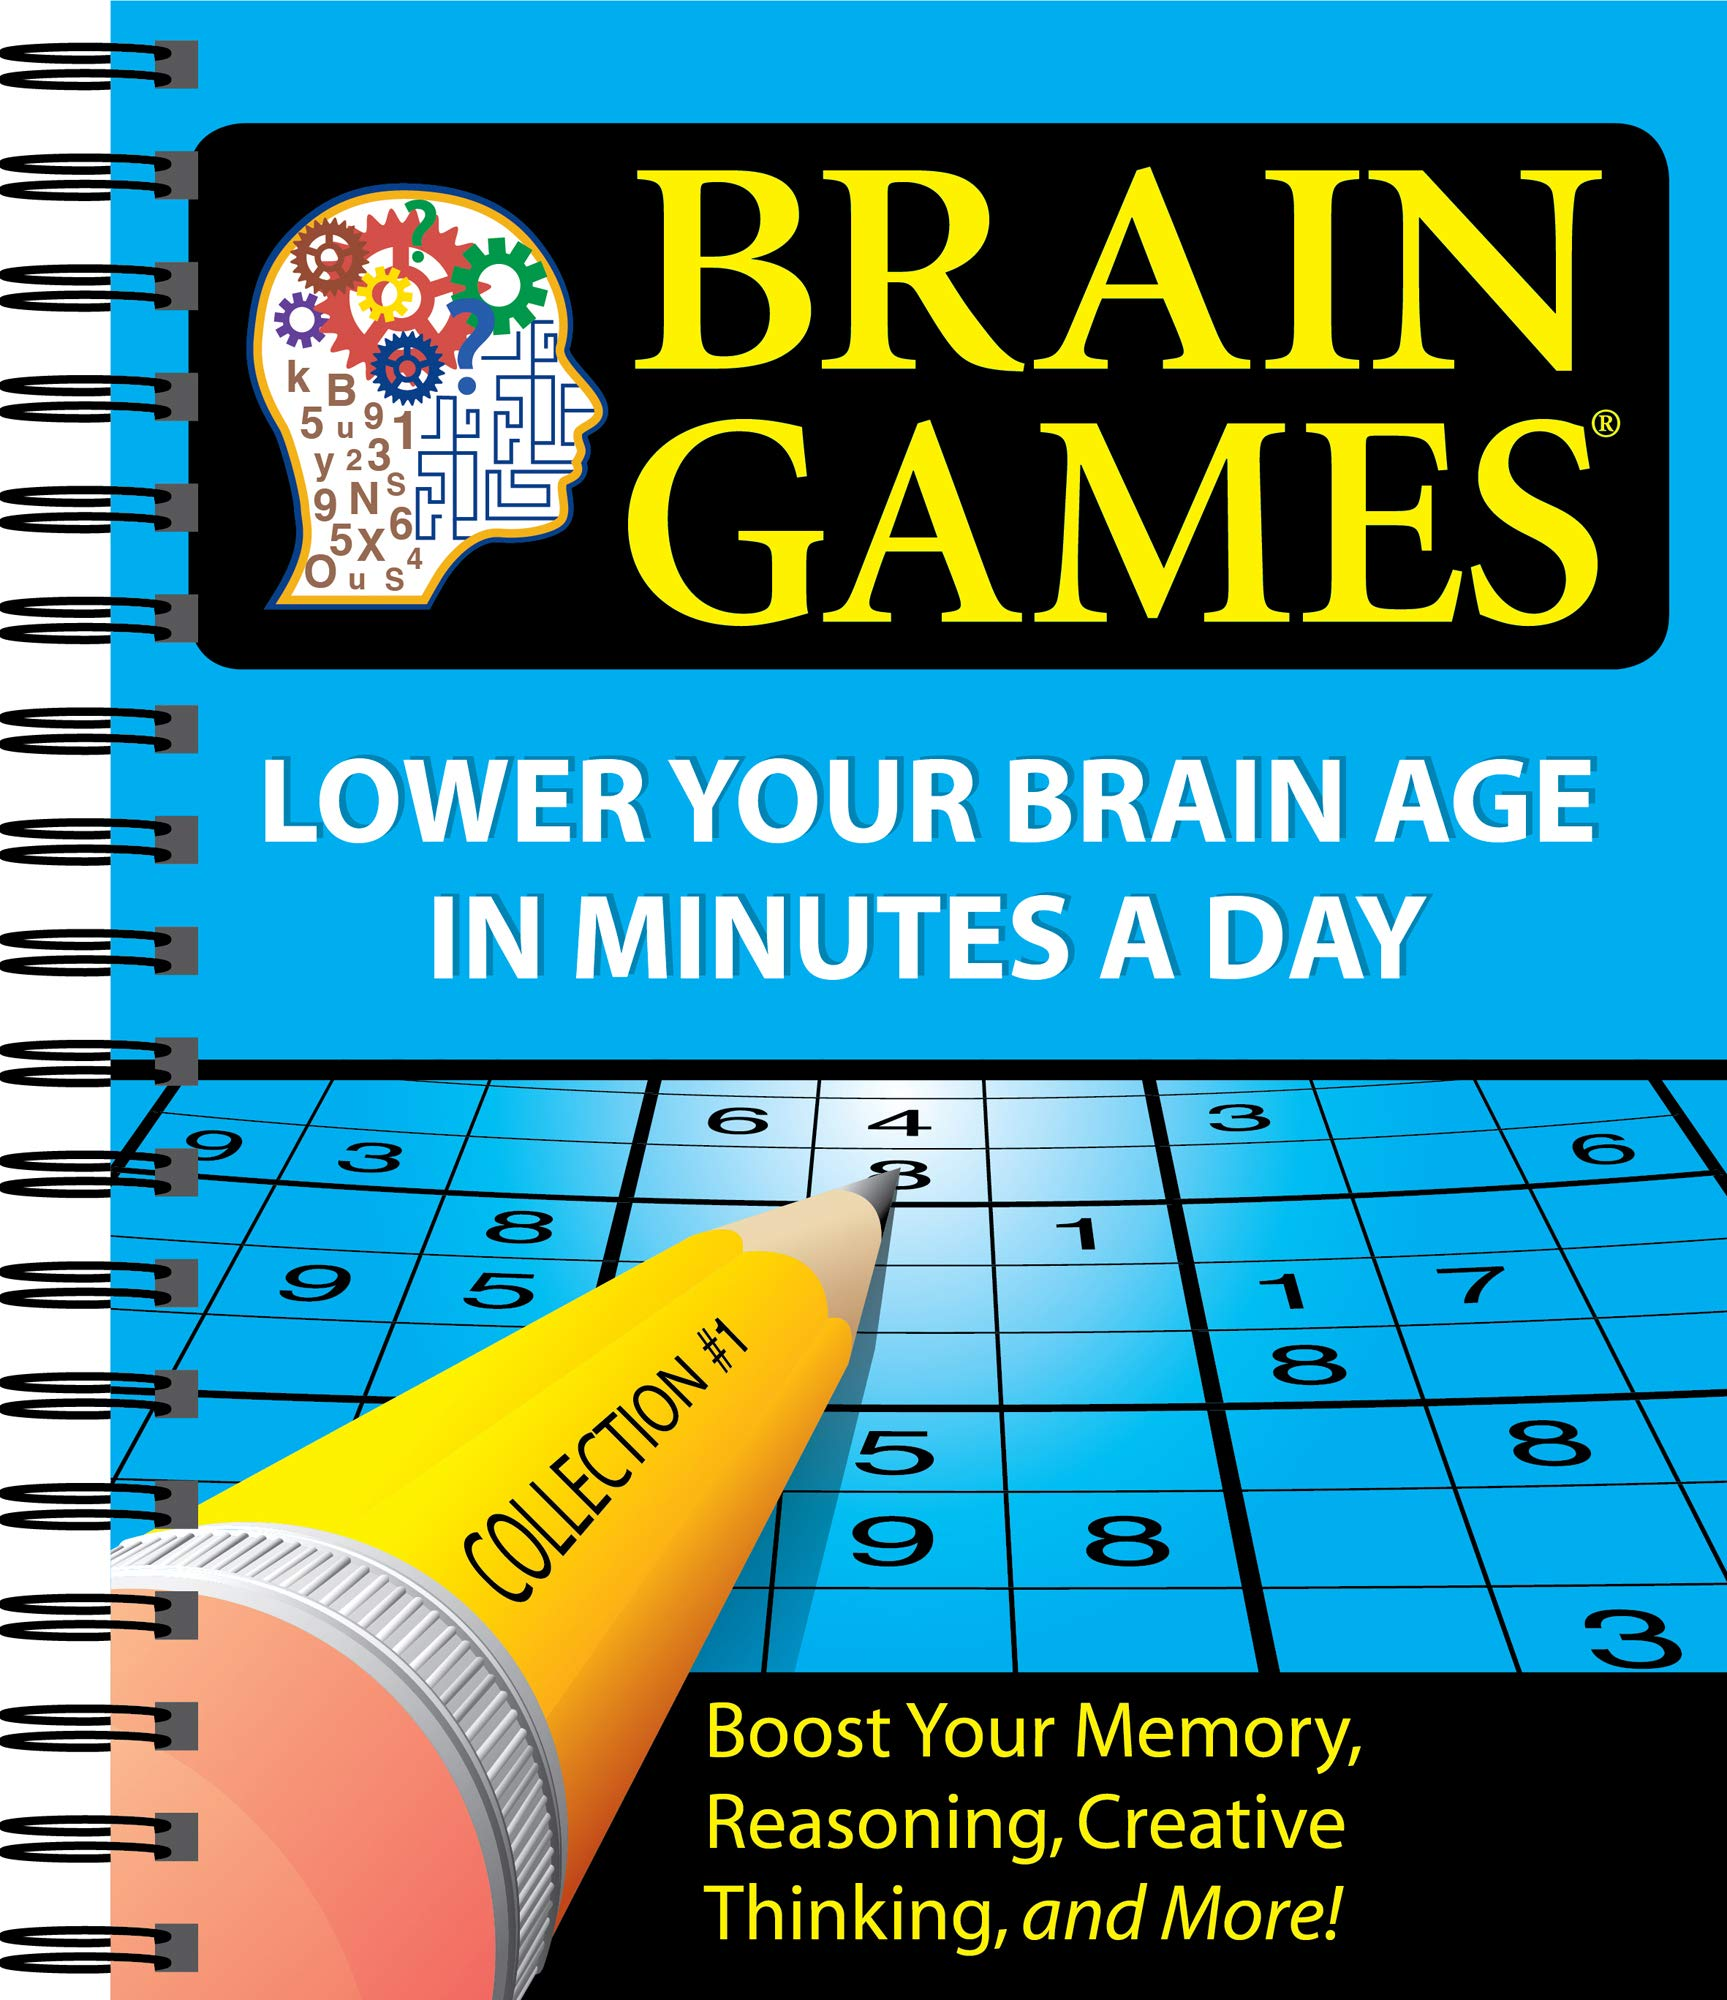 Brain Games #1: Lower Your Brain Age in Minutes a Day